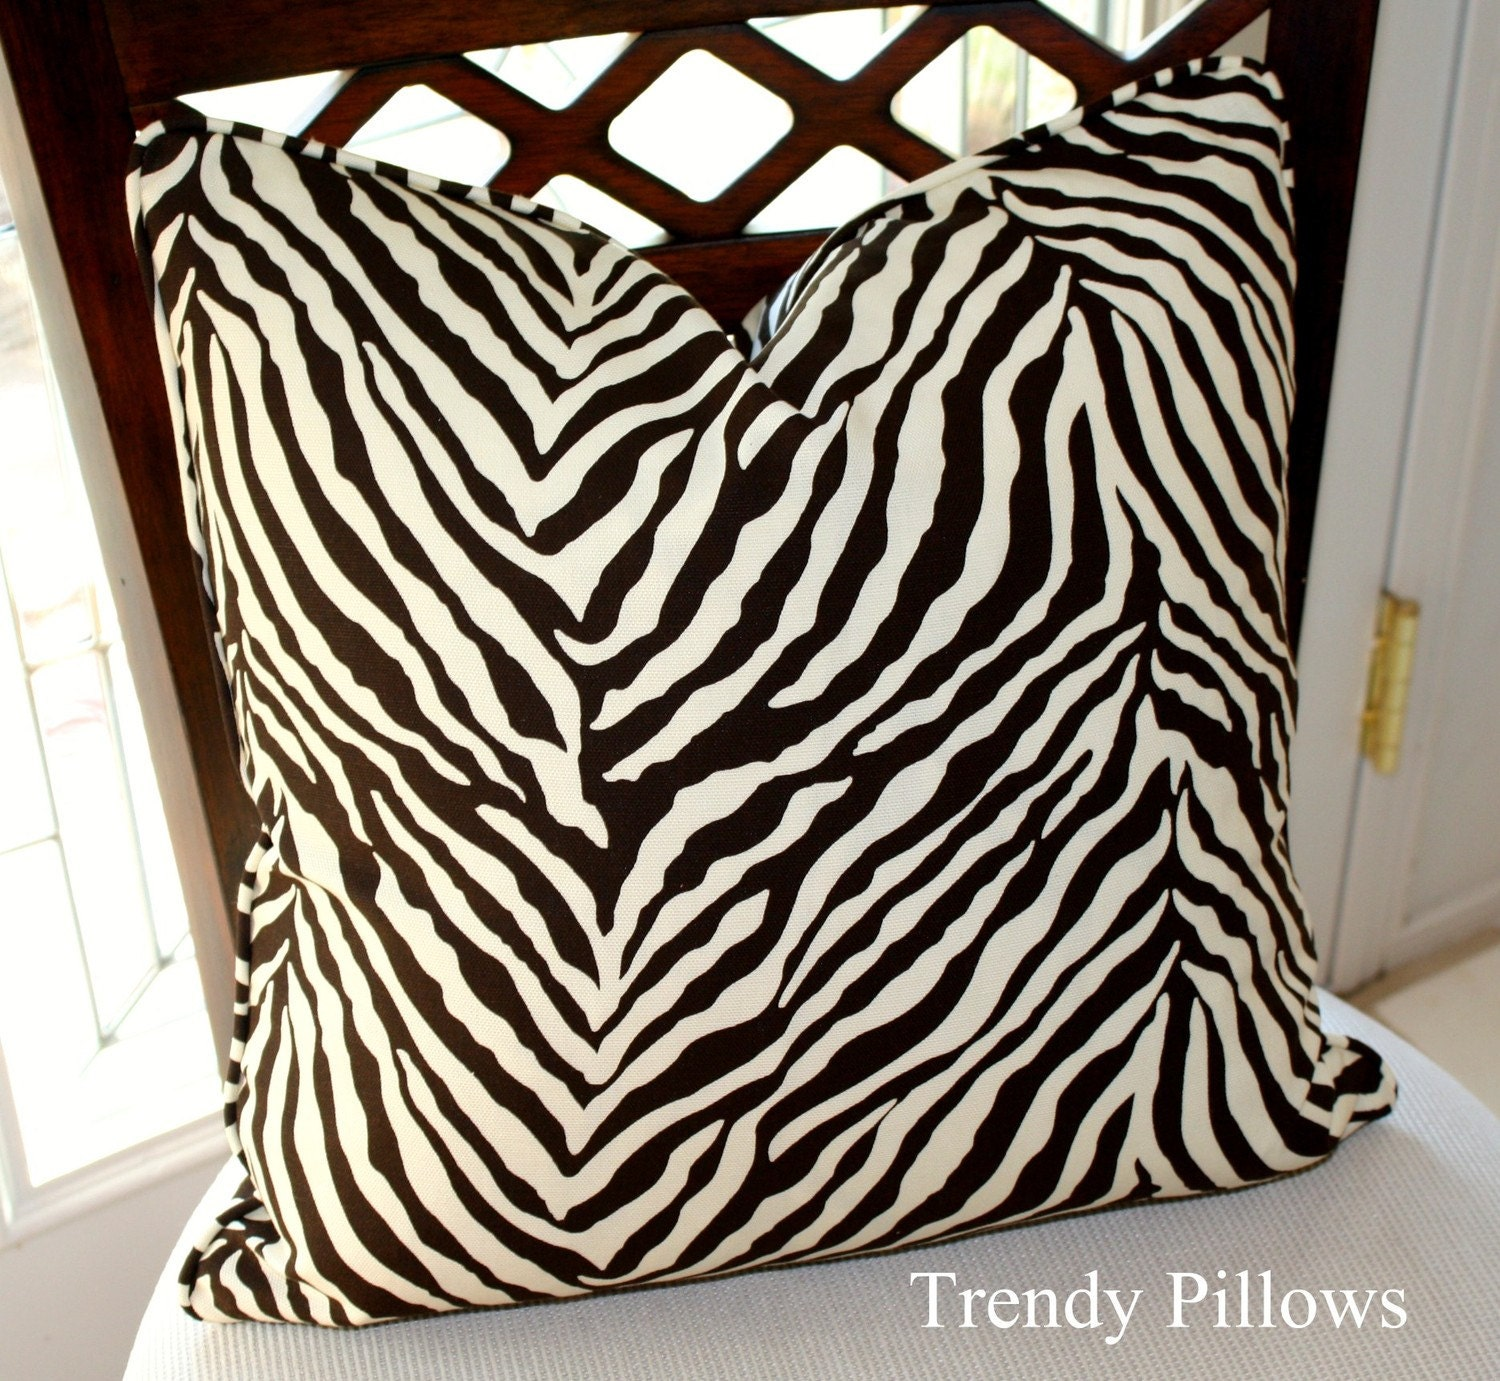 What Size Pillow Insert For 17x17 Cover